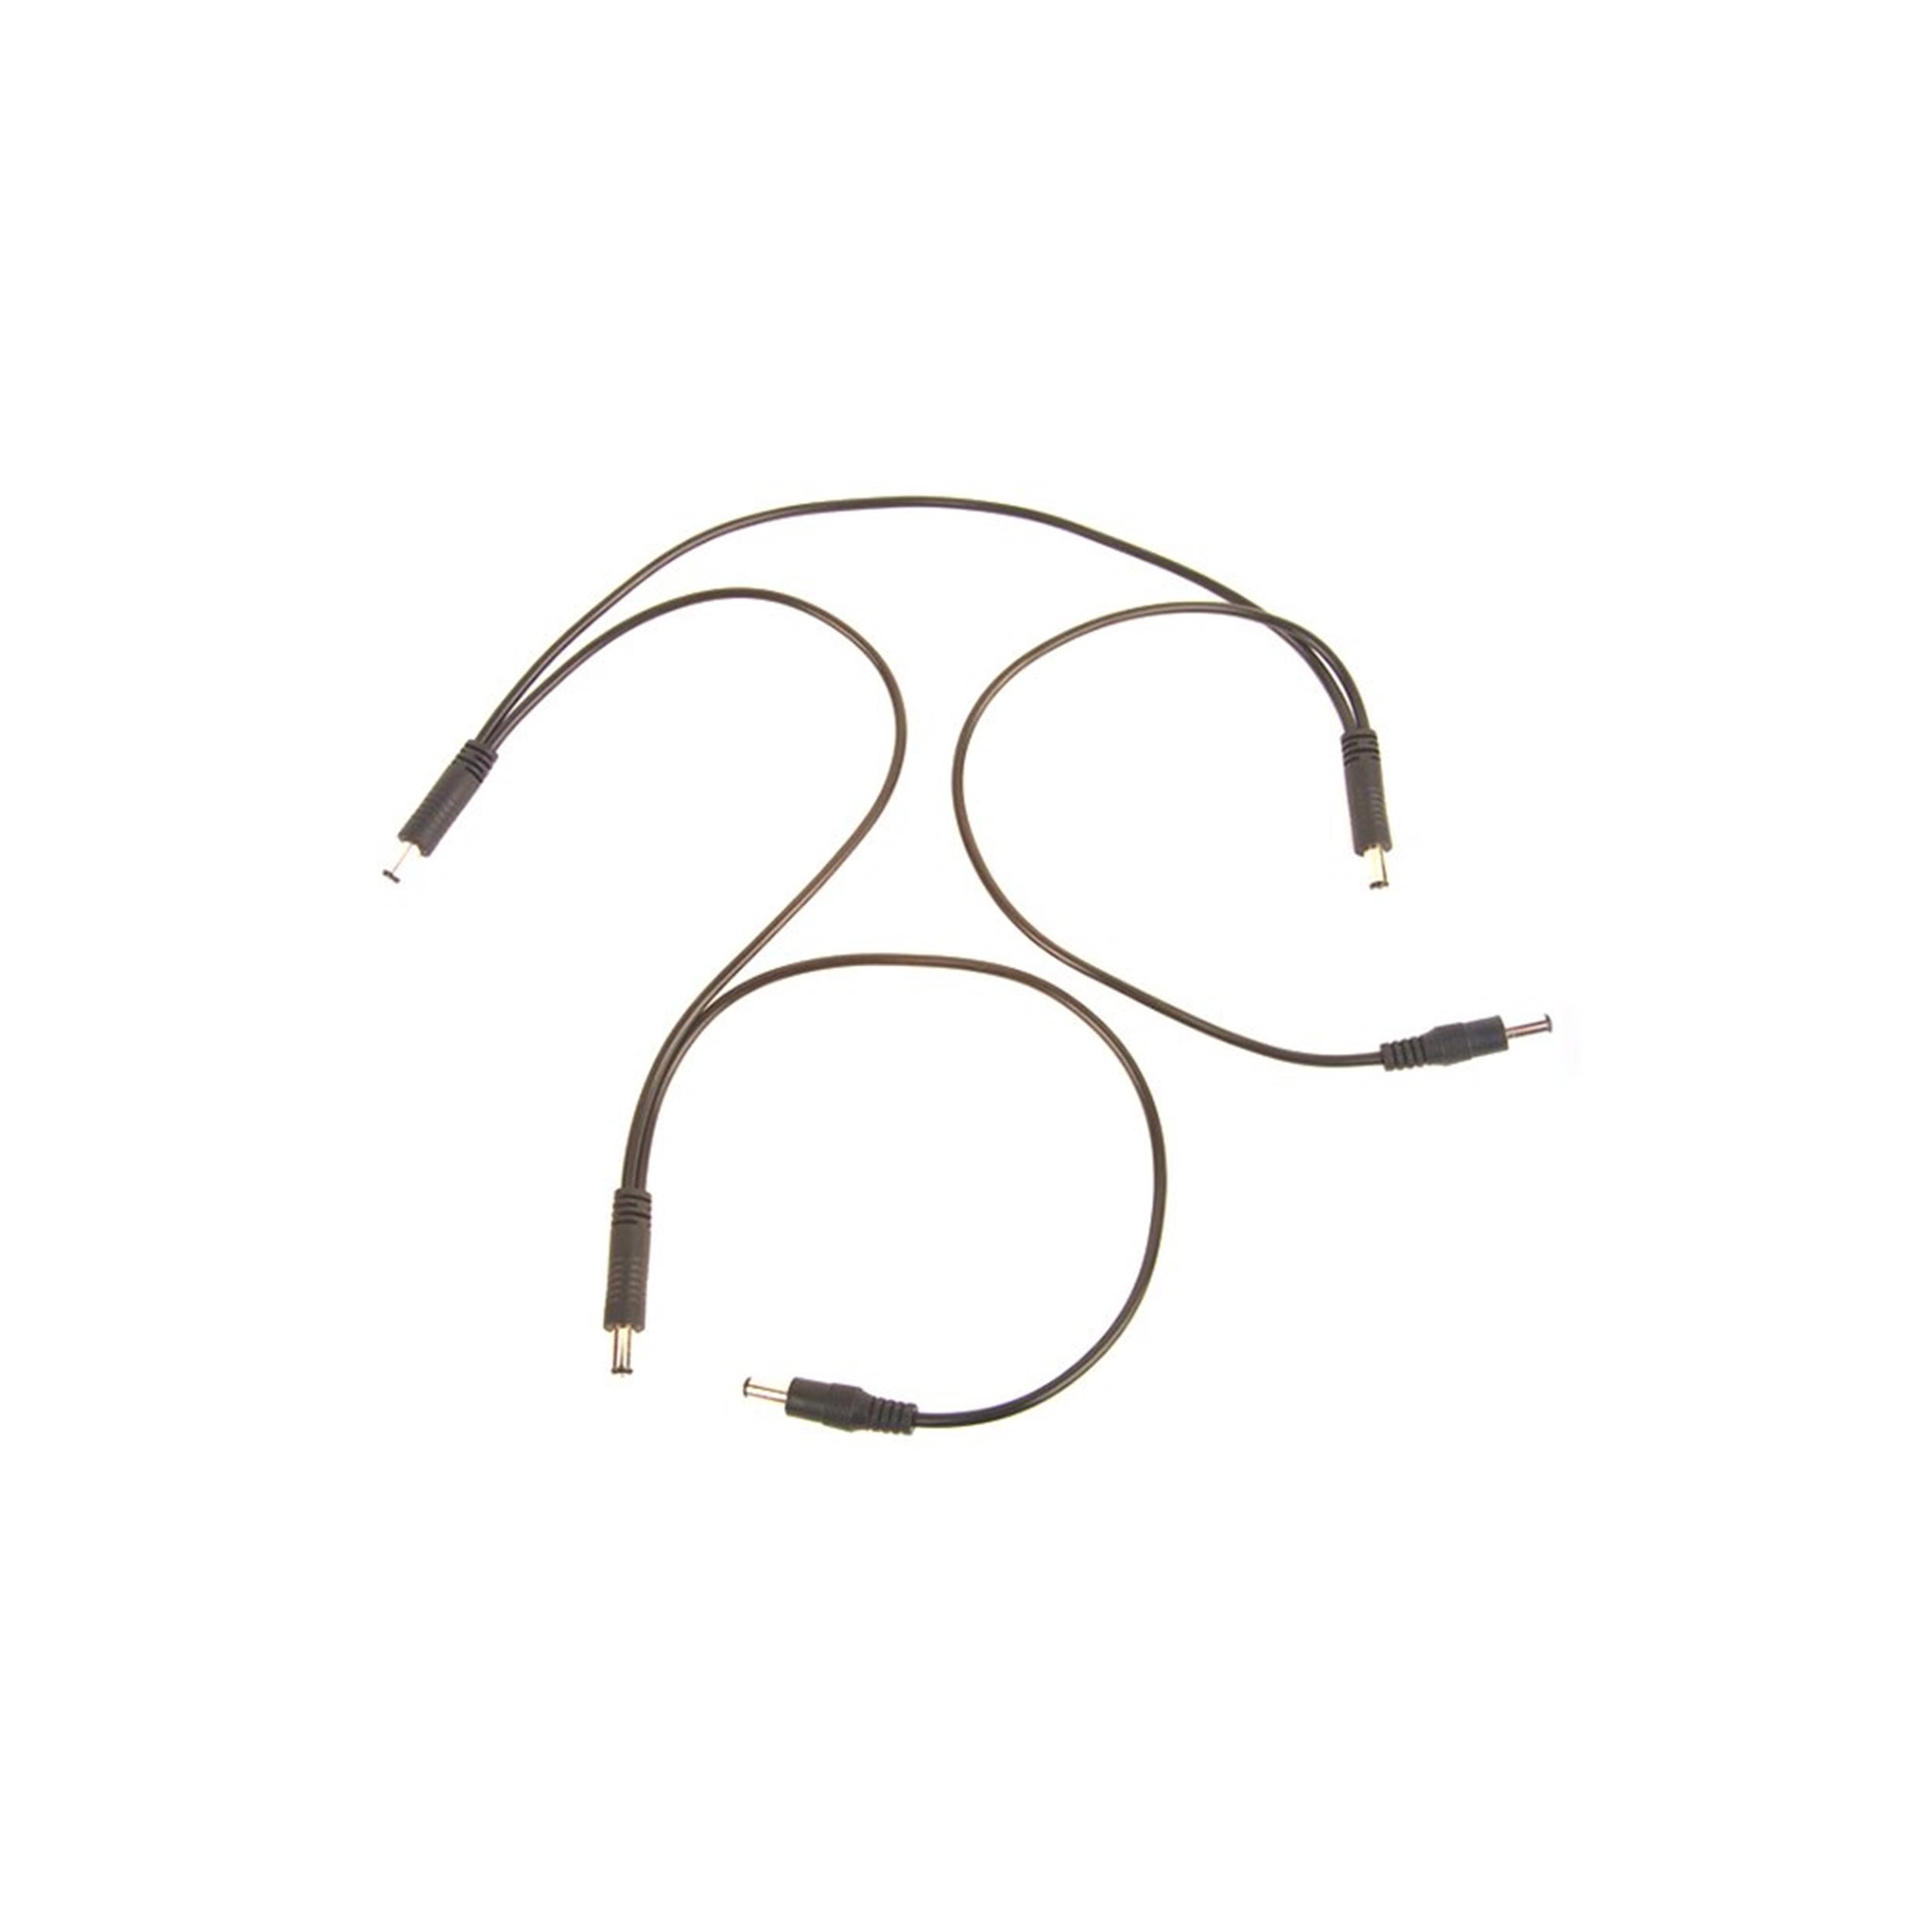 STRYMON MULTI-PLUG DAISY CHAIN CABLE